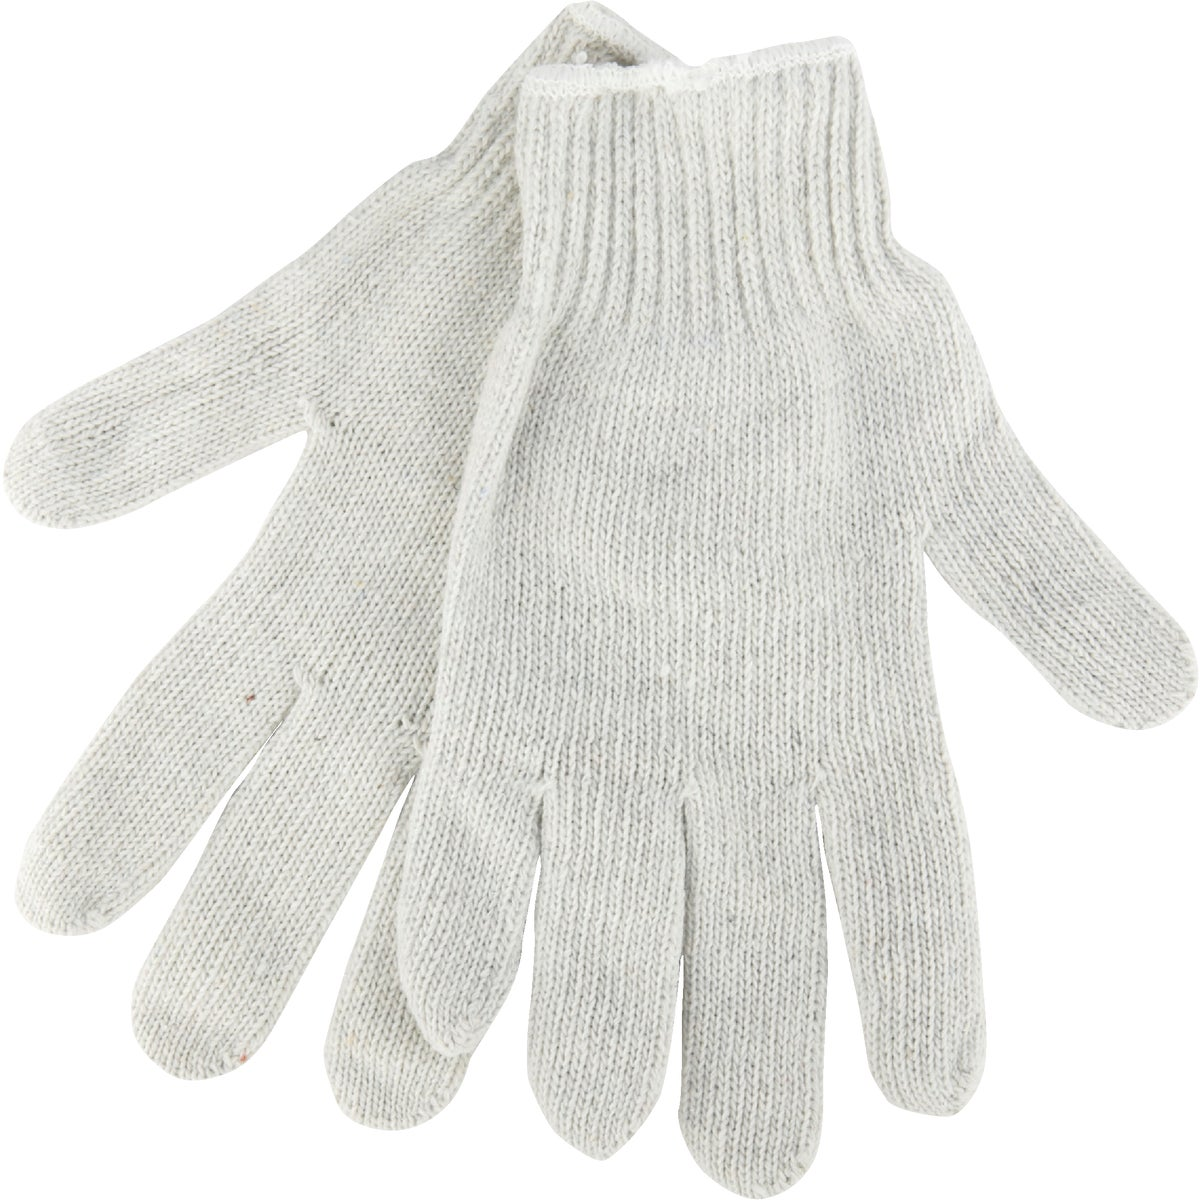 LRG STRING KNIT GLOVE - 759771 by Do it Best